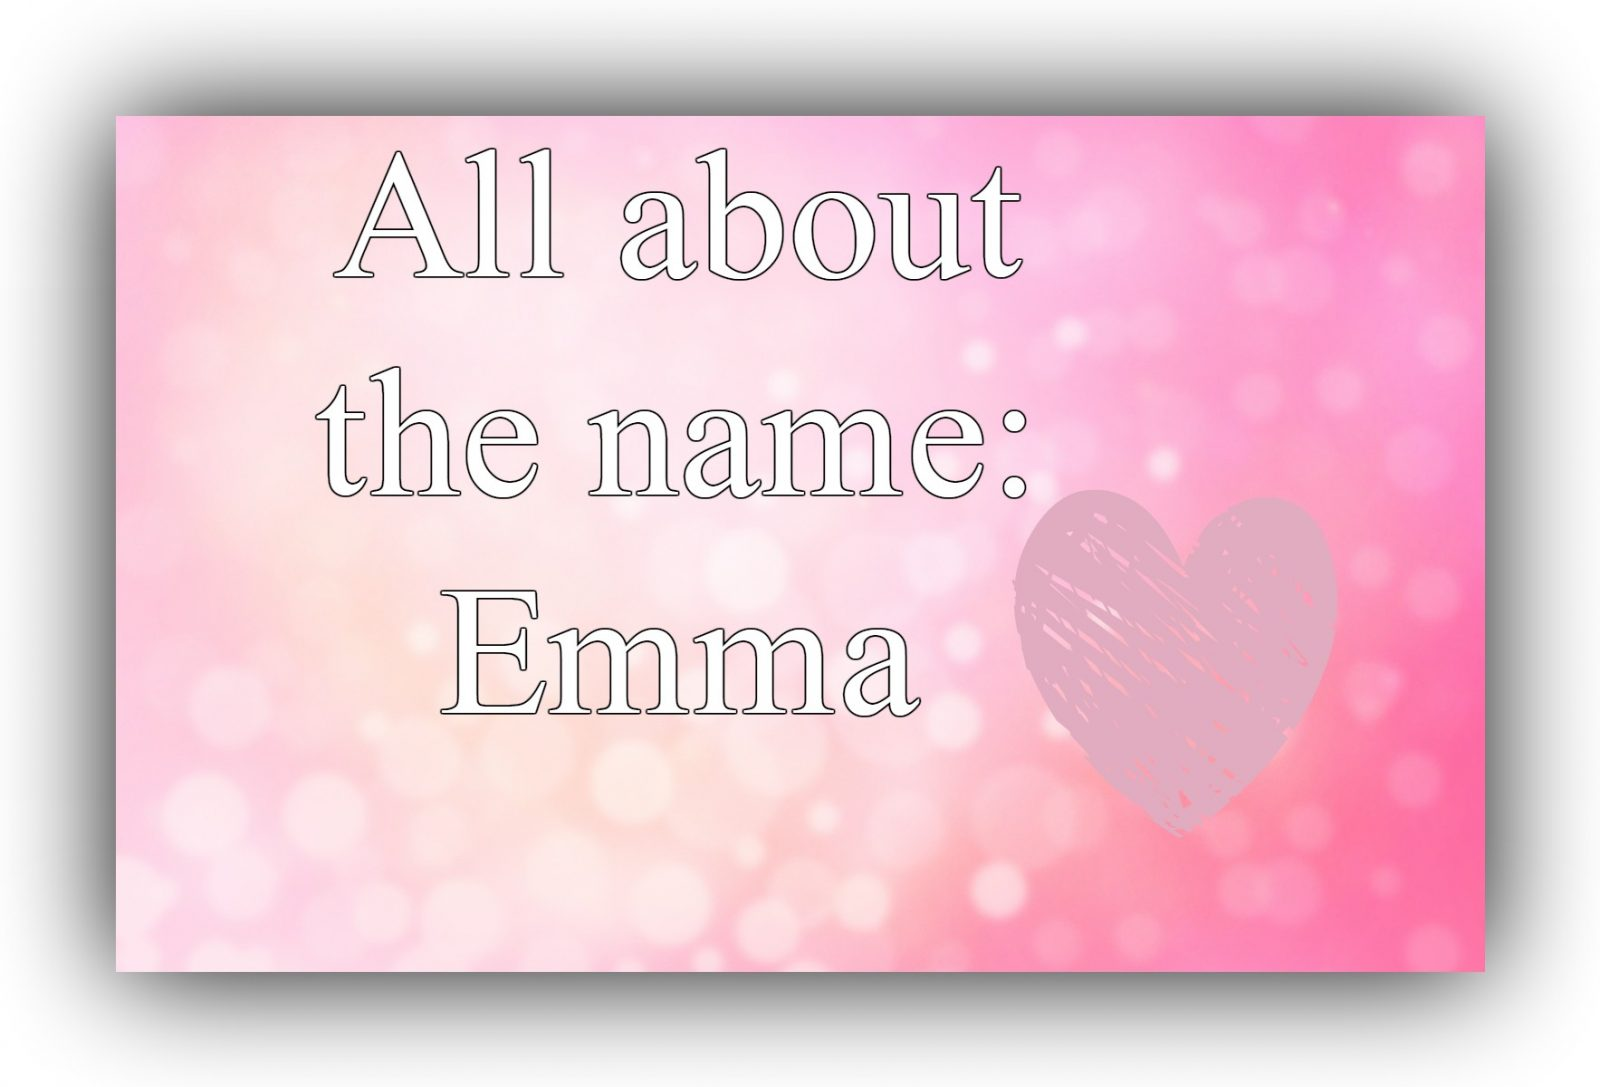 most popular name is Emma